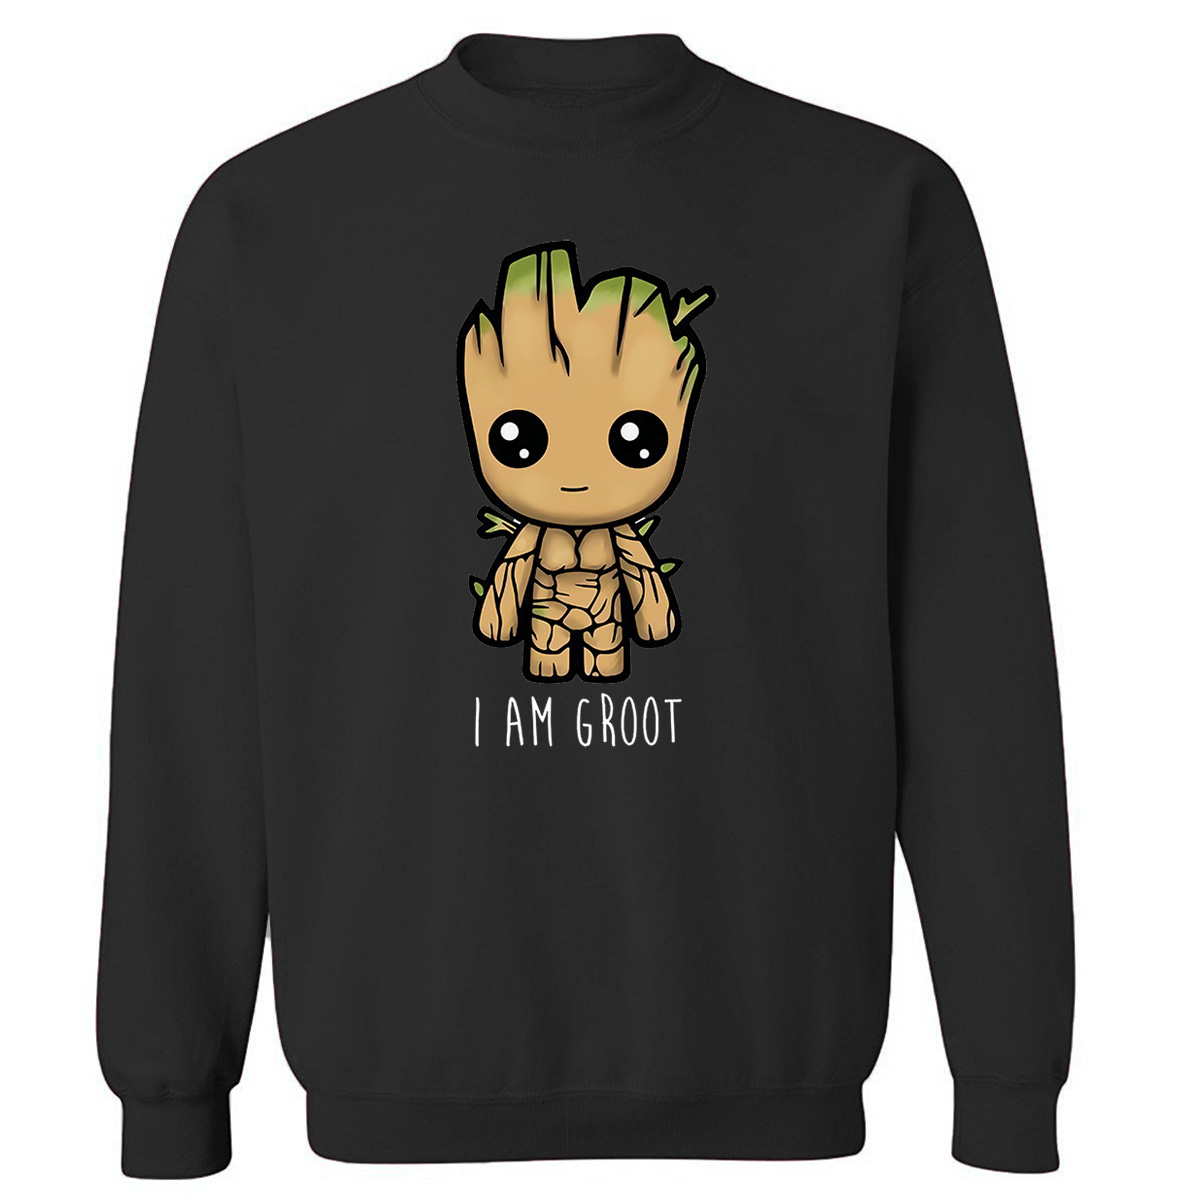 Avengers I'M GROOT Printed Sweatshirts Male Autumn Winter 2019 New Fashion O-Neck Pullover Men Harajuku Fleece Men's Sweatshirt